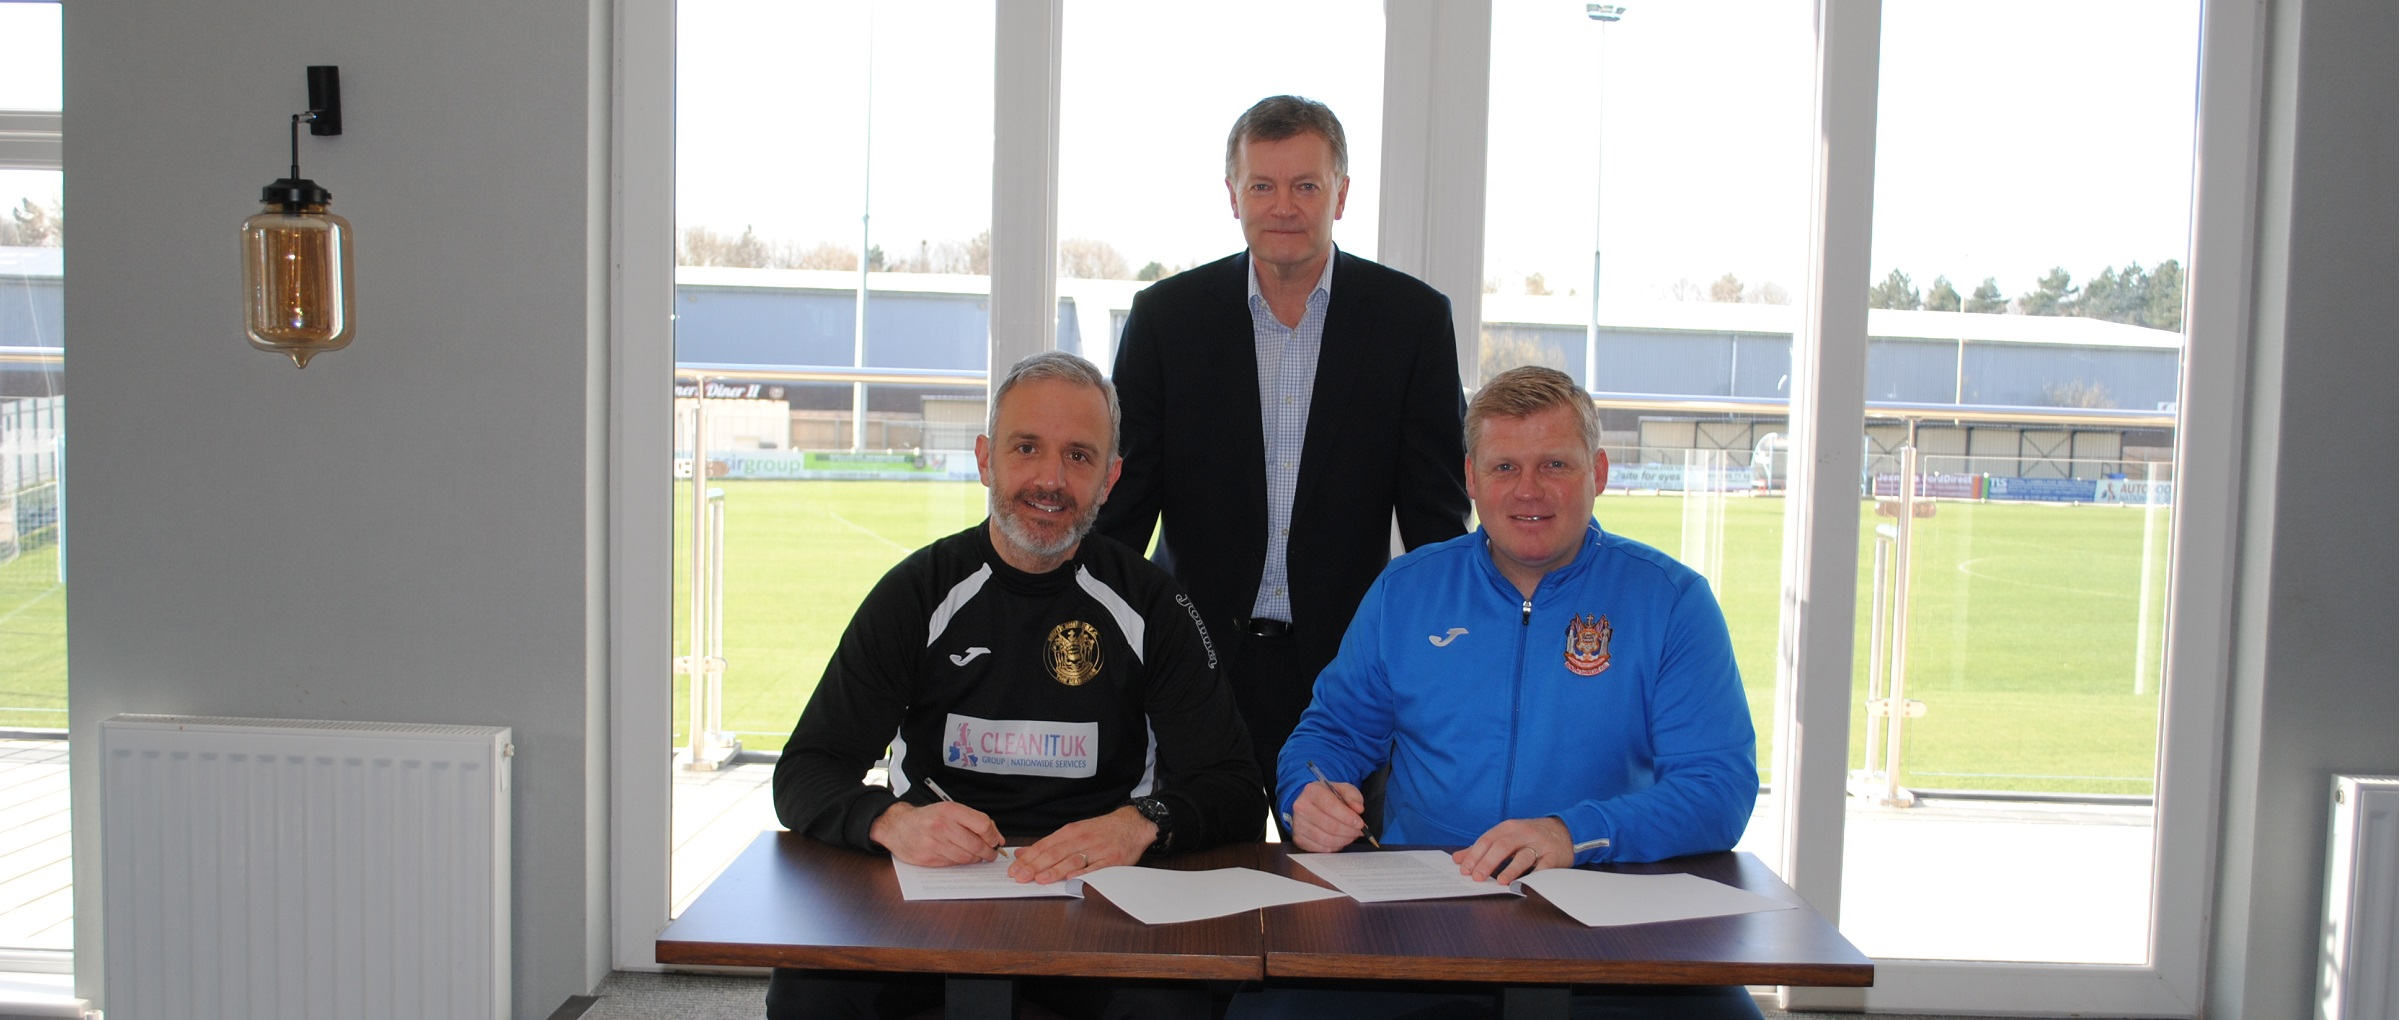 Lee Picton and Graham Fenton sign new two-year contracts